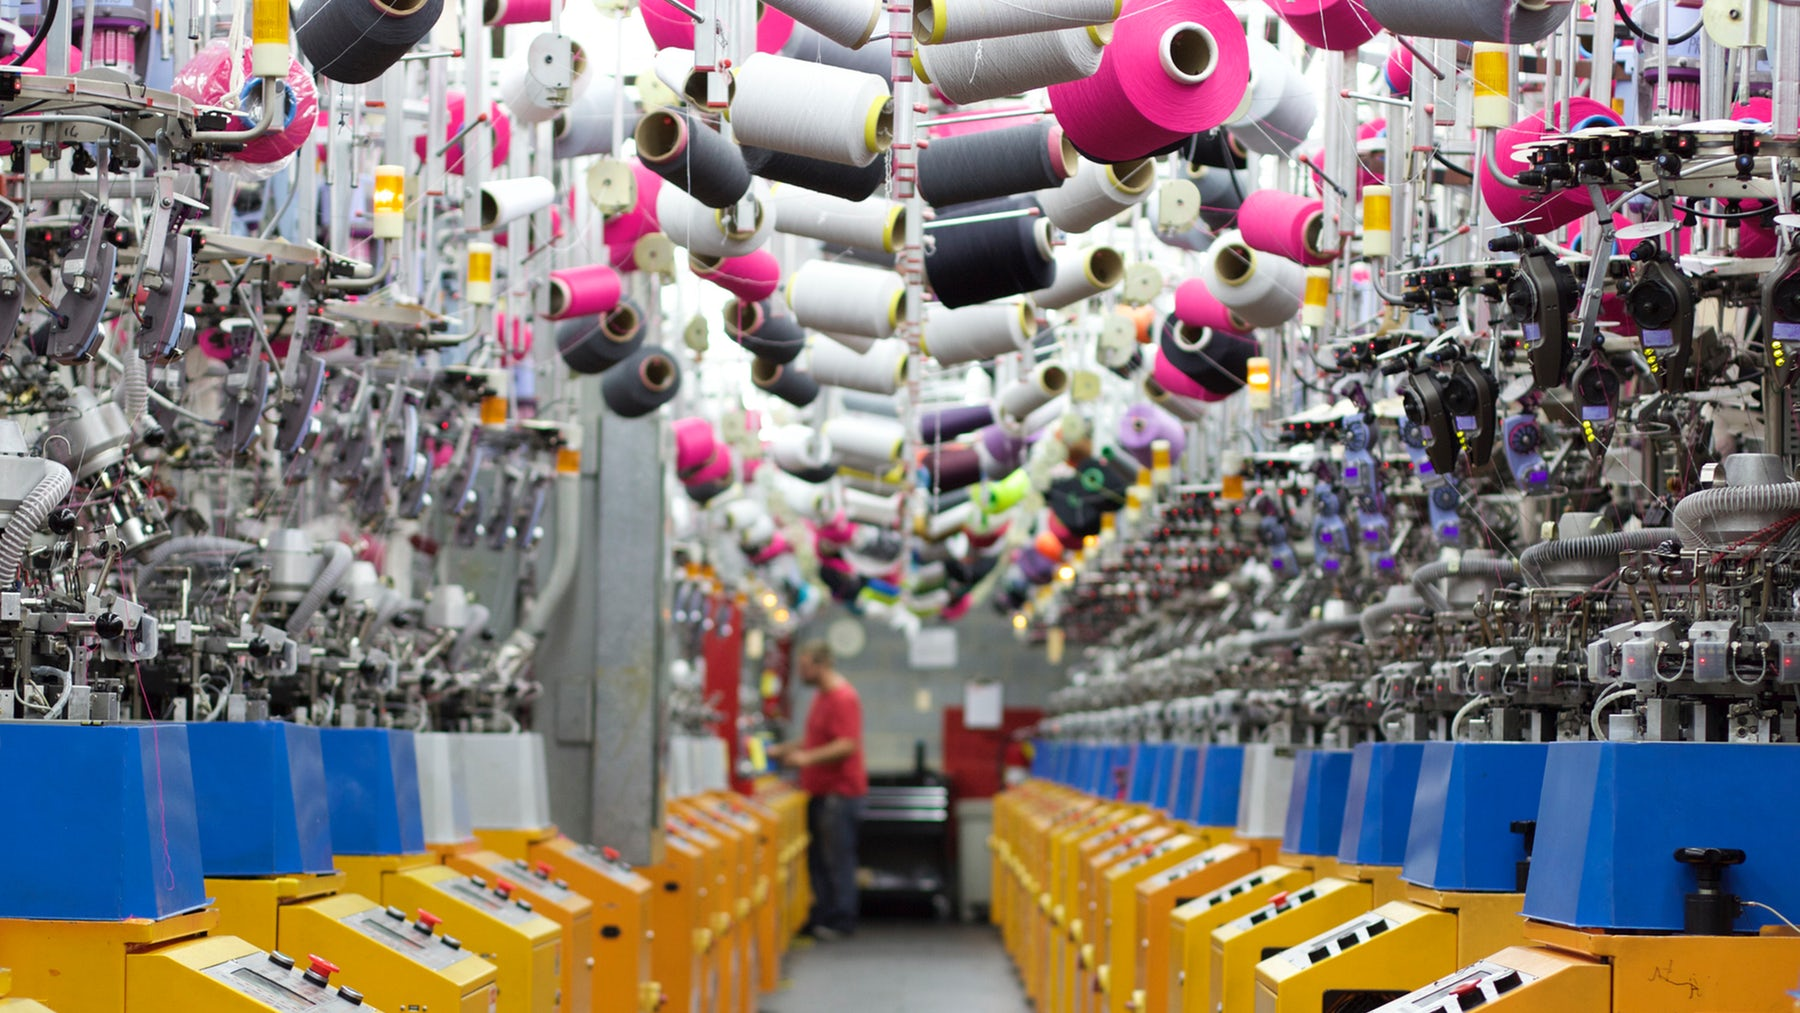 Double-cylinder jacquard knitting machines at Harris & Covington's hosiery factory in North Carolina | Source: Courtesy